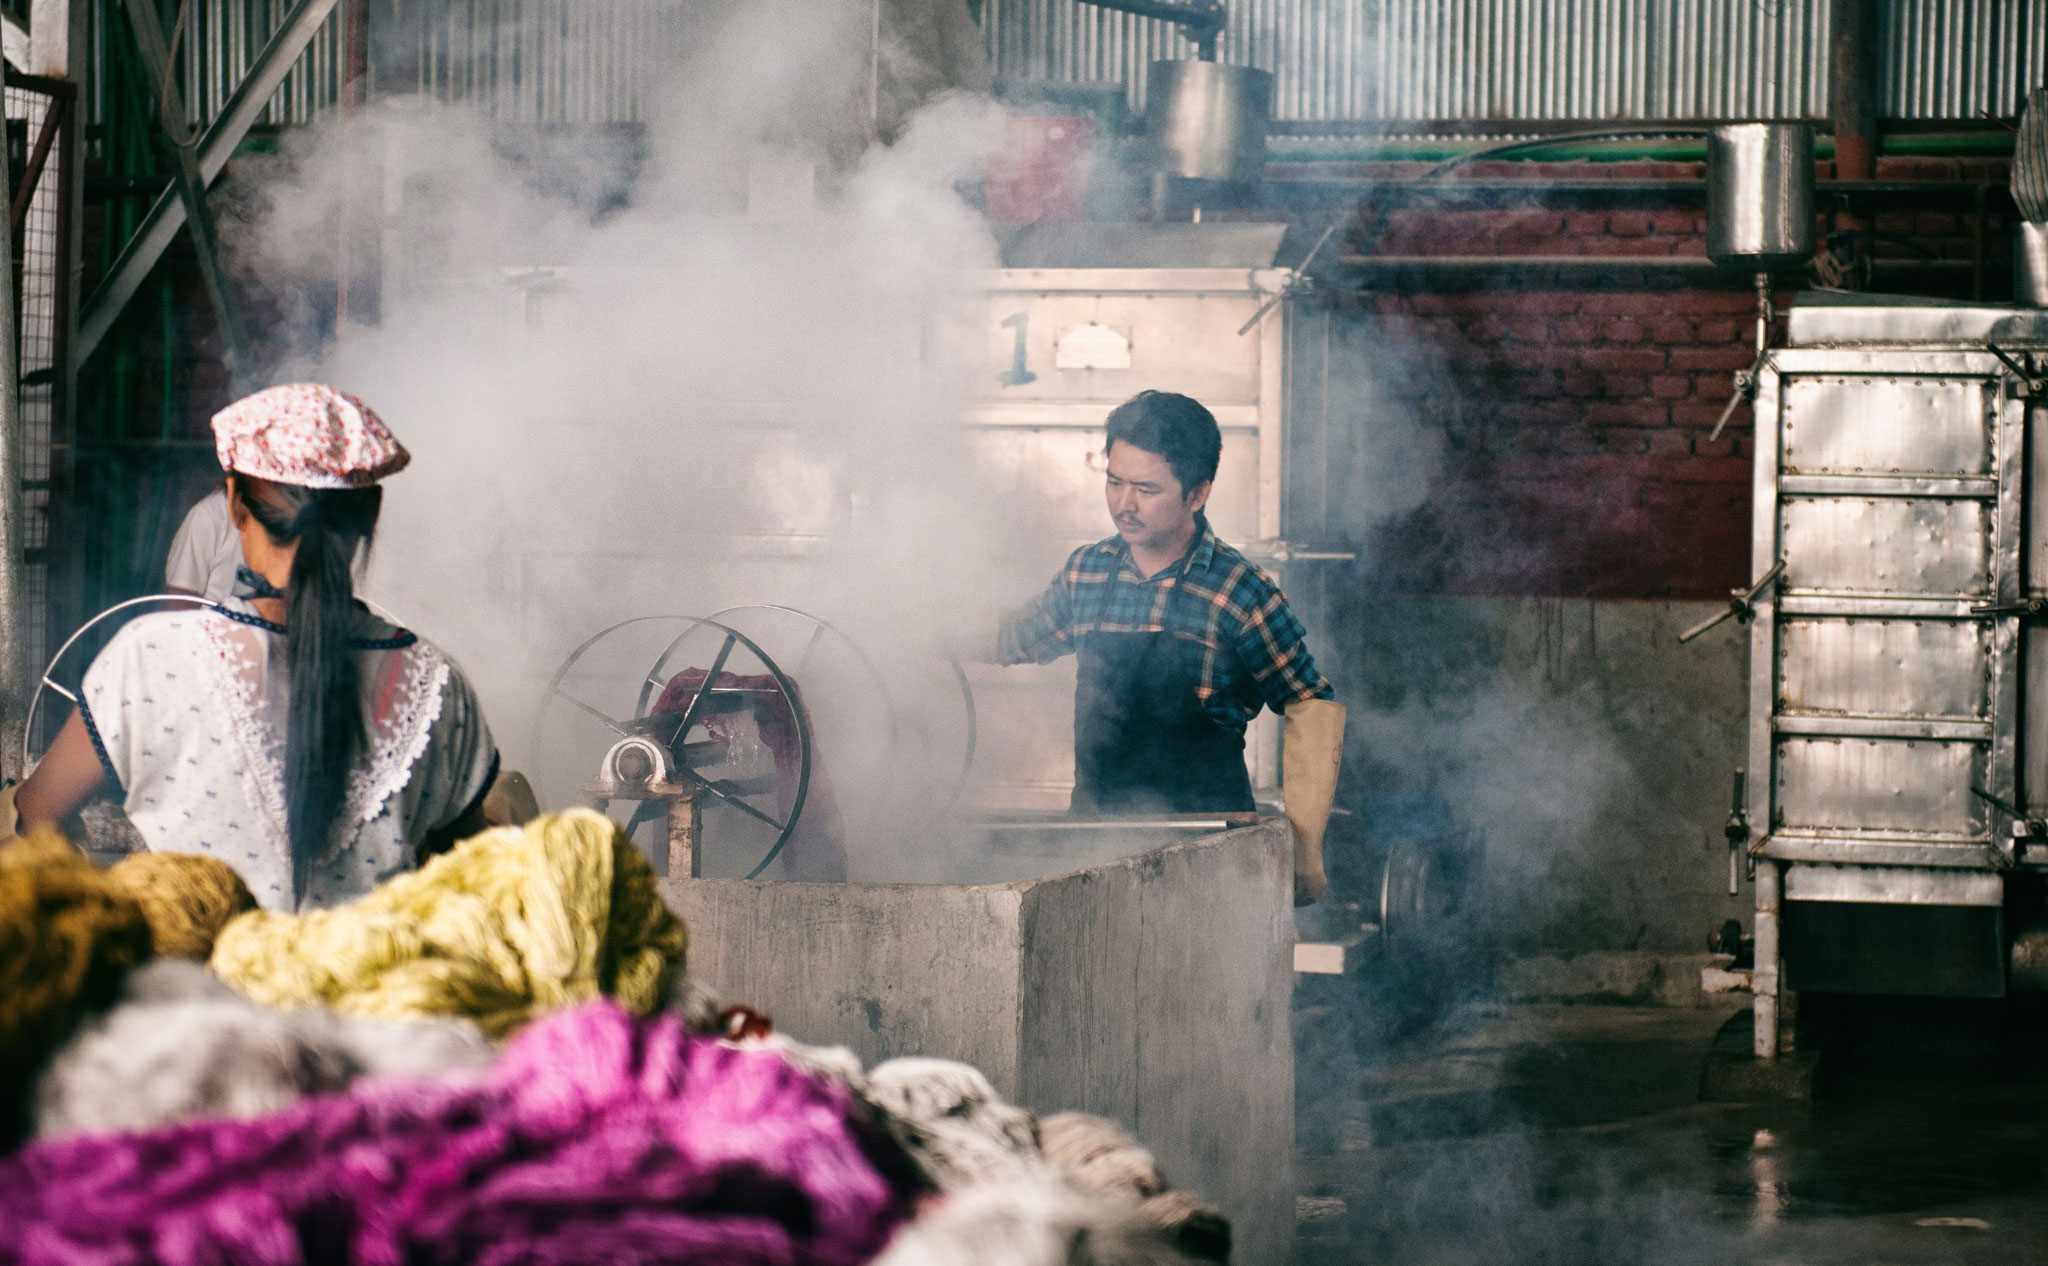 Noted Nepali stage actor Tika Bhakta Jirel is shown during filming of a dye shop scene in 'Nine Million Stars'. | Image courtesy of Jan Kath.